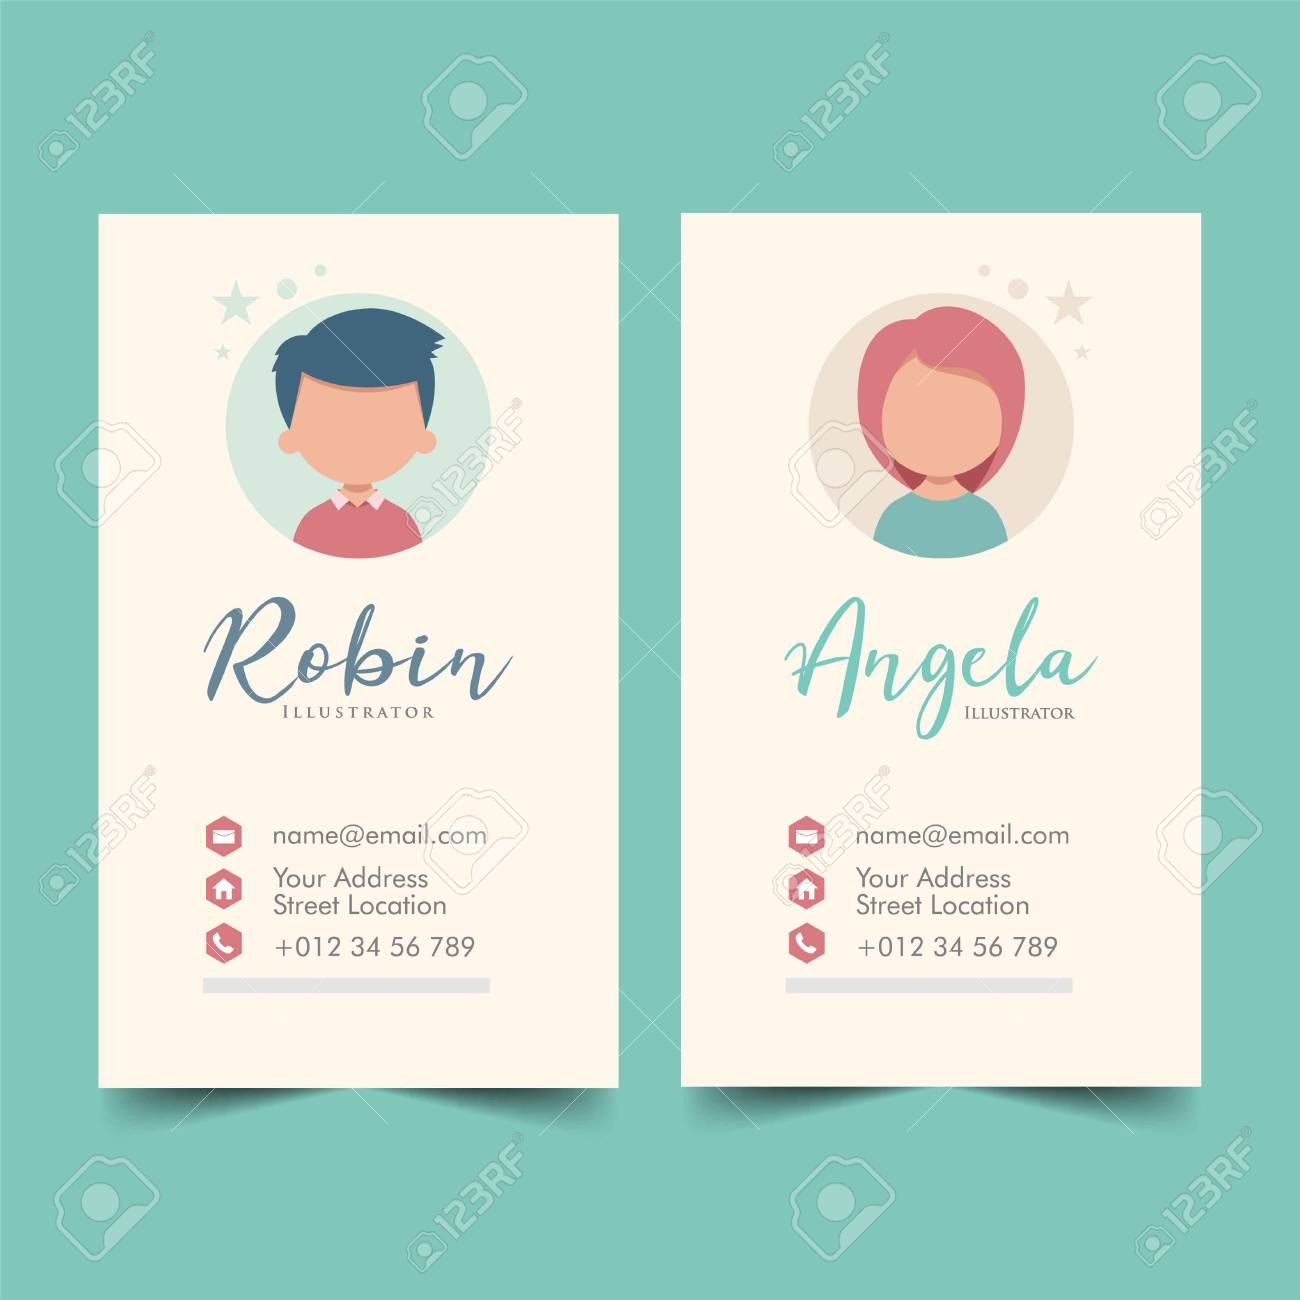 Cute Business Cards Template Vector Illustration Royalty Free